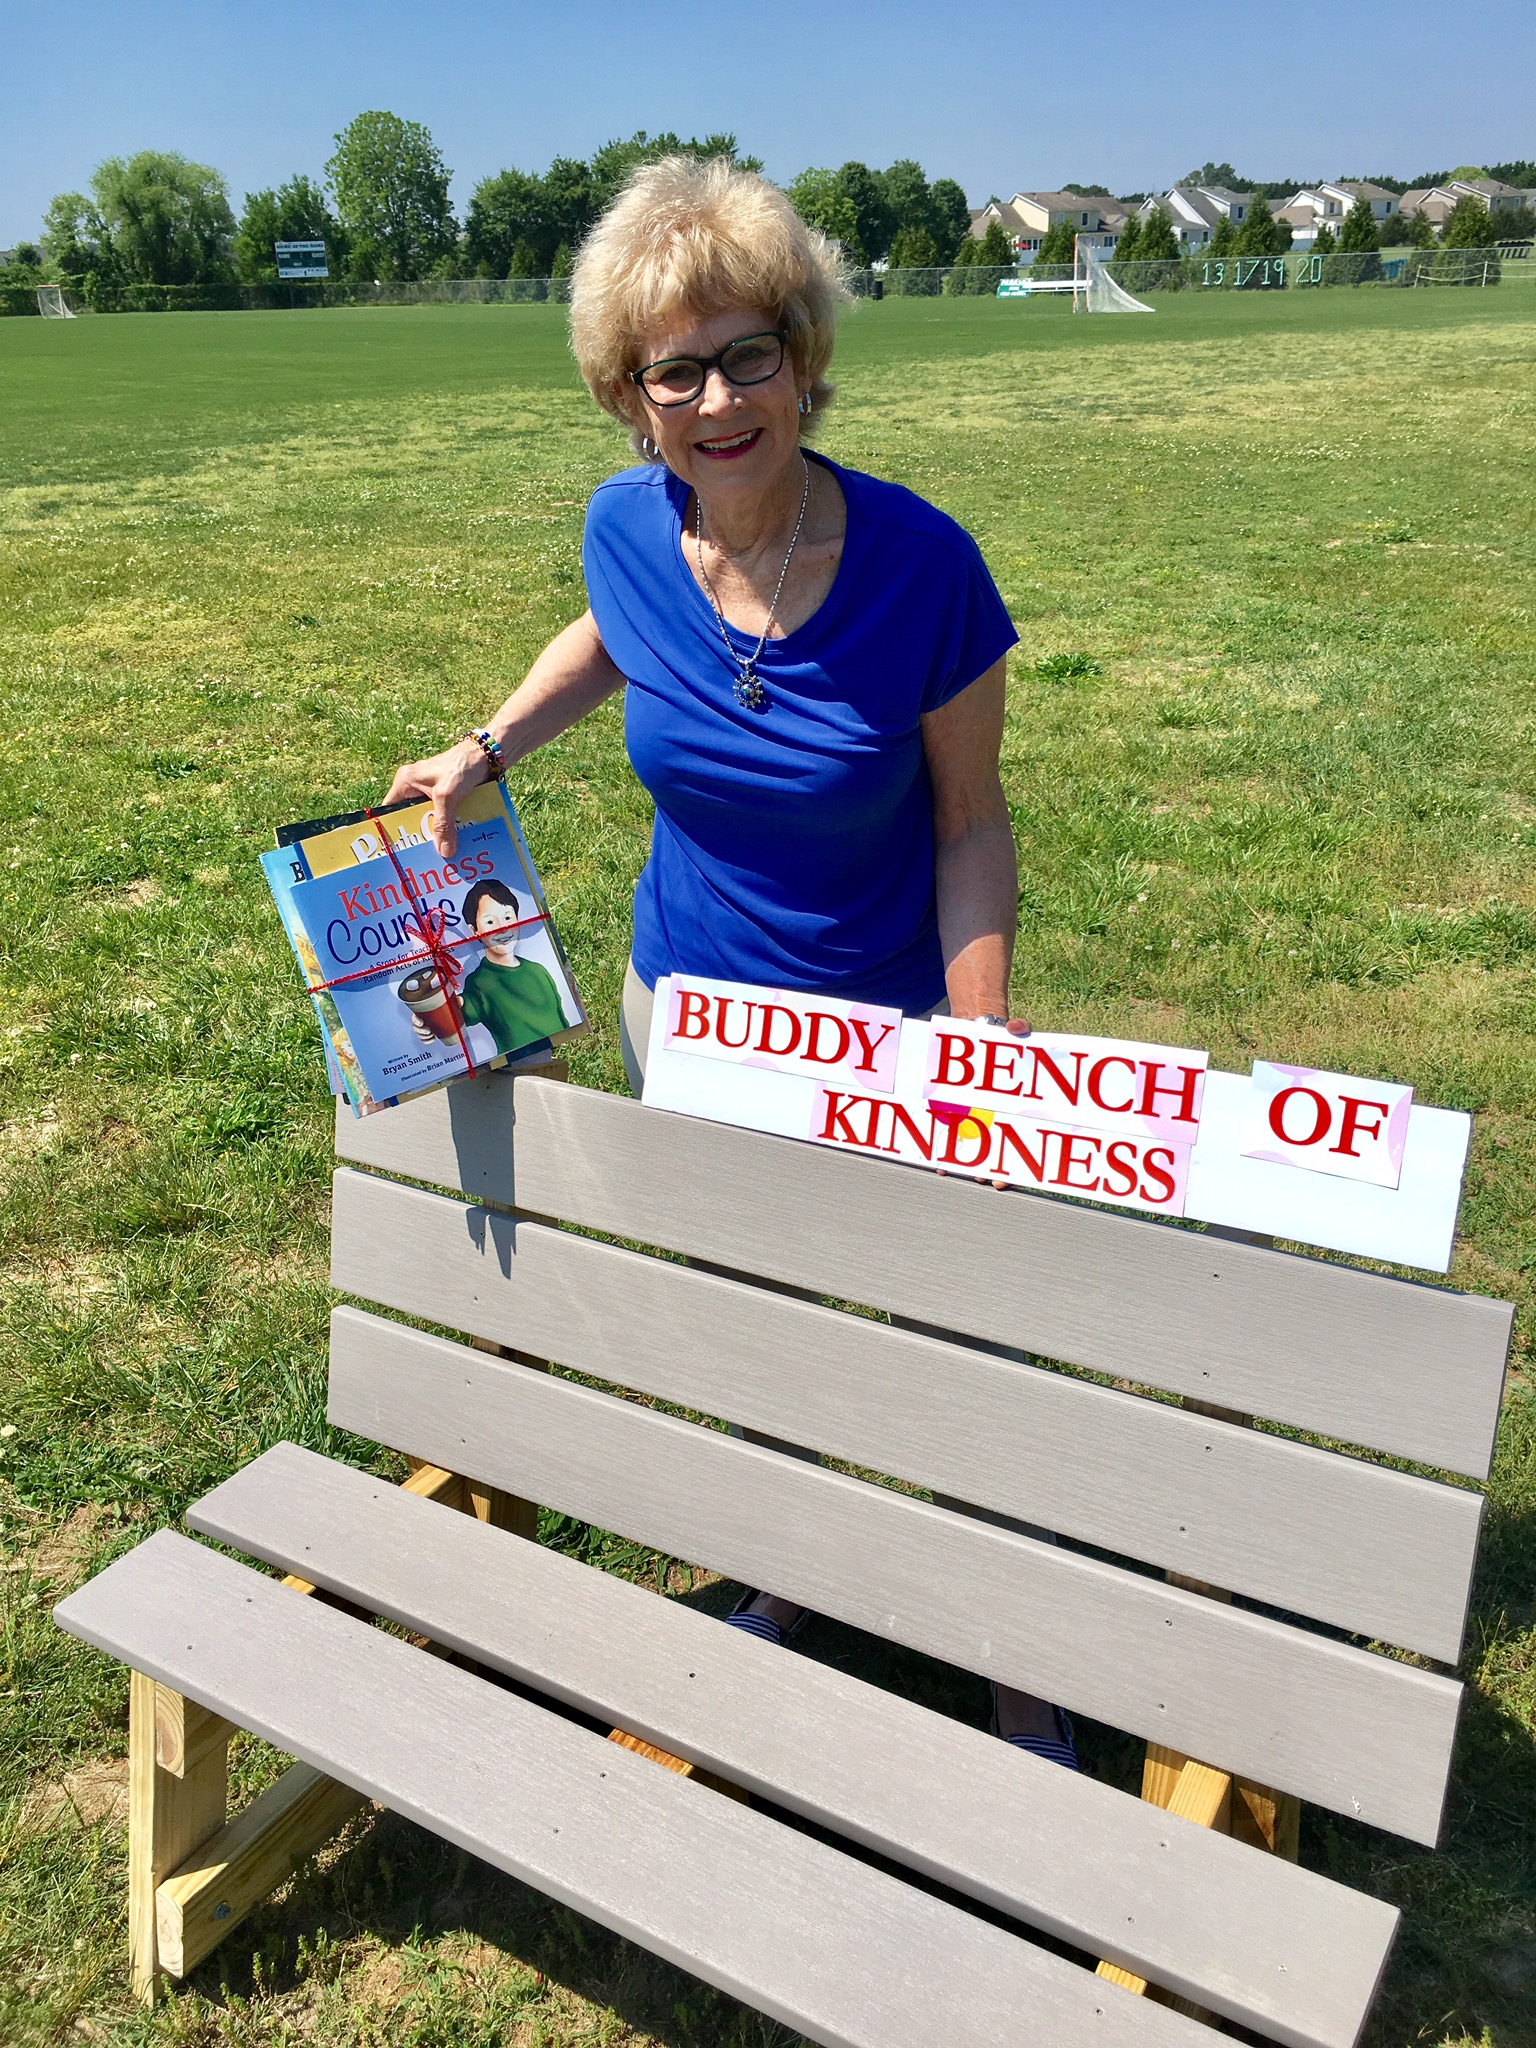 From Kindness Bracelets to Buddy Benches